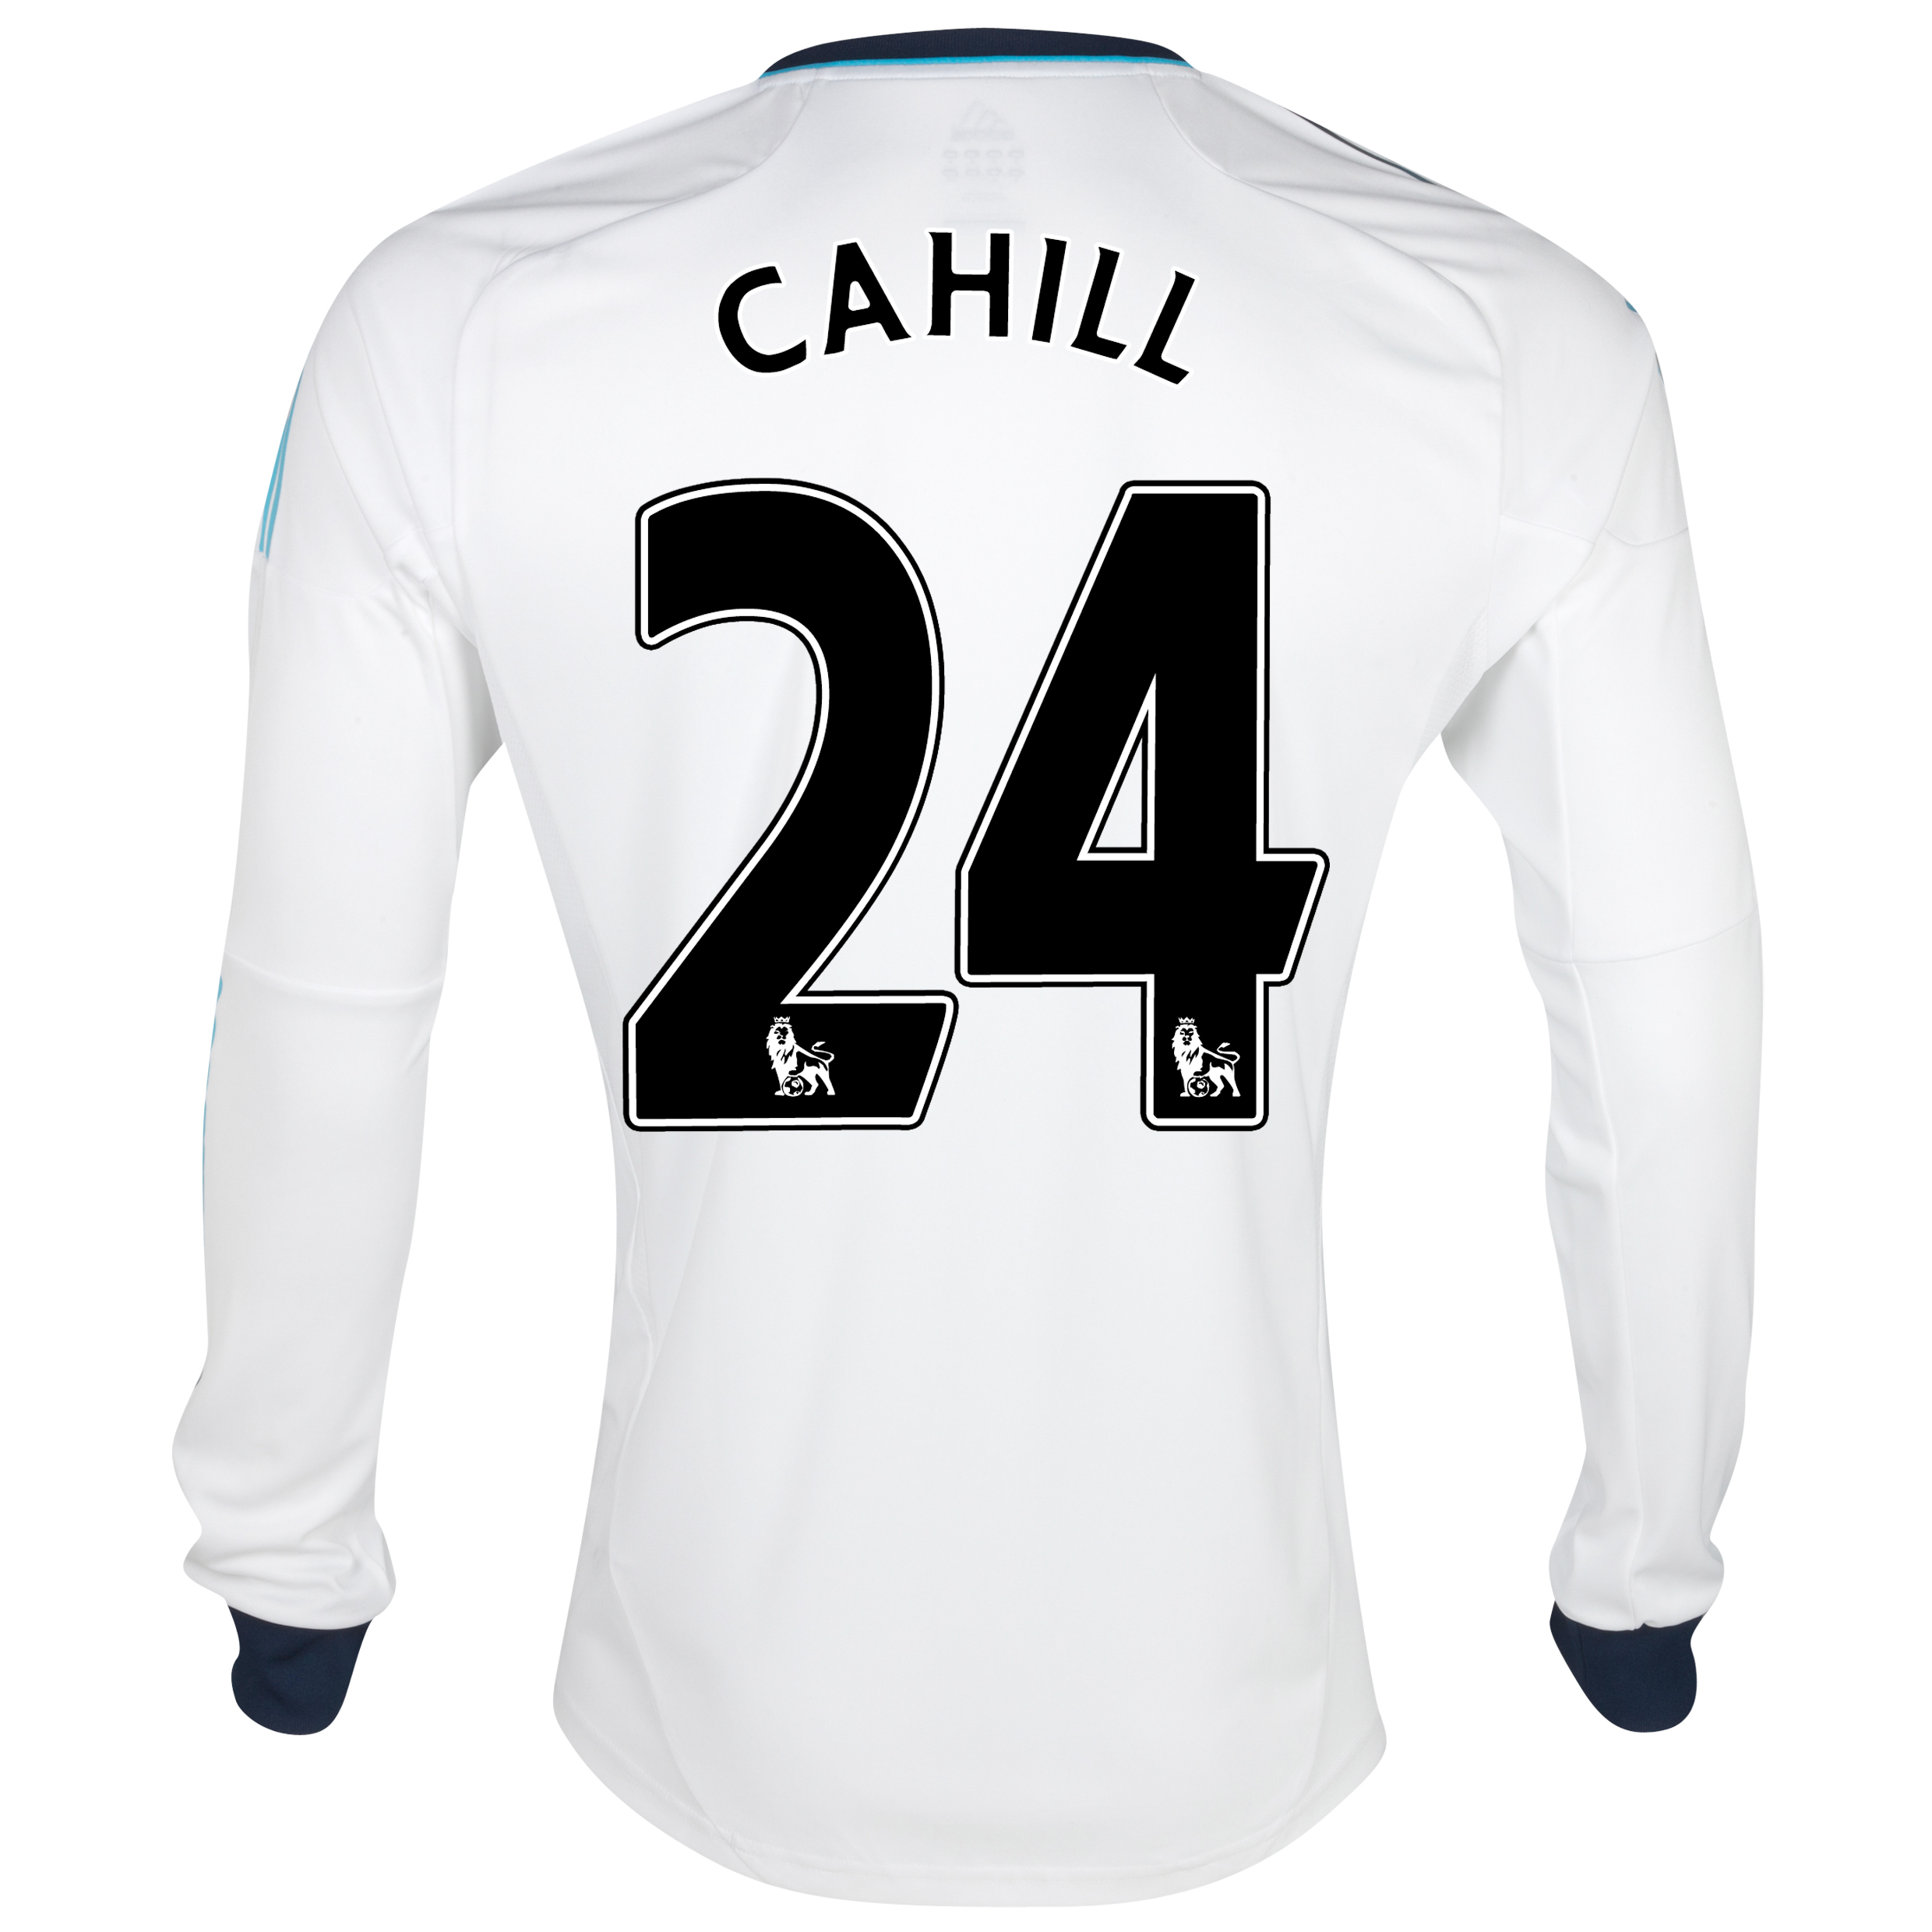 Chelsea Away Shirt 2012/13 - Long Sleeved  - Youths with Cahill 24 printing